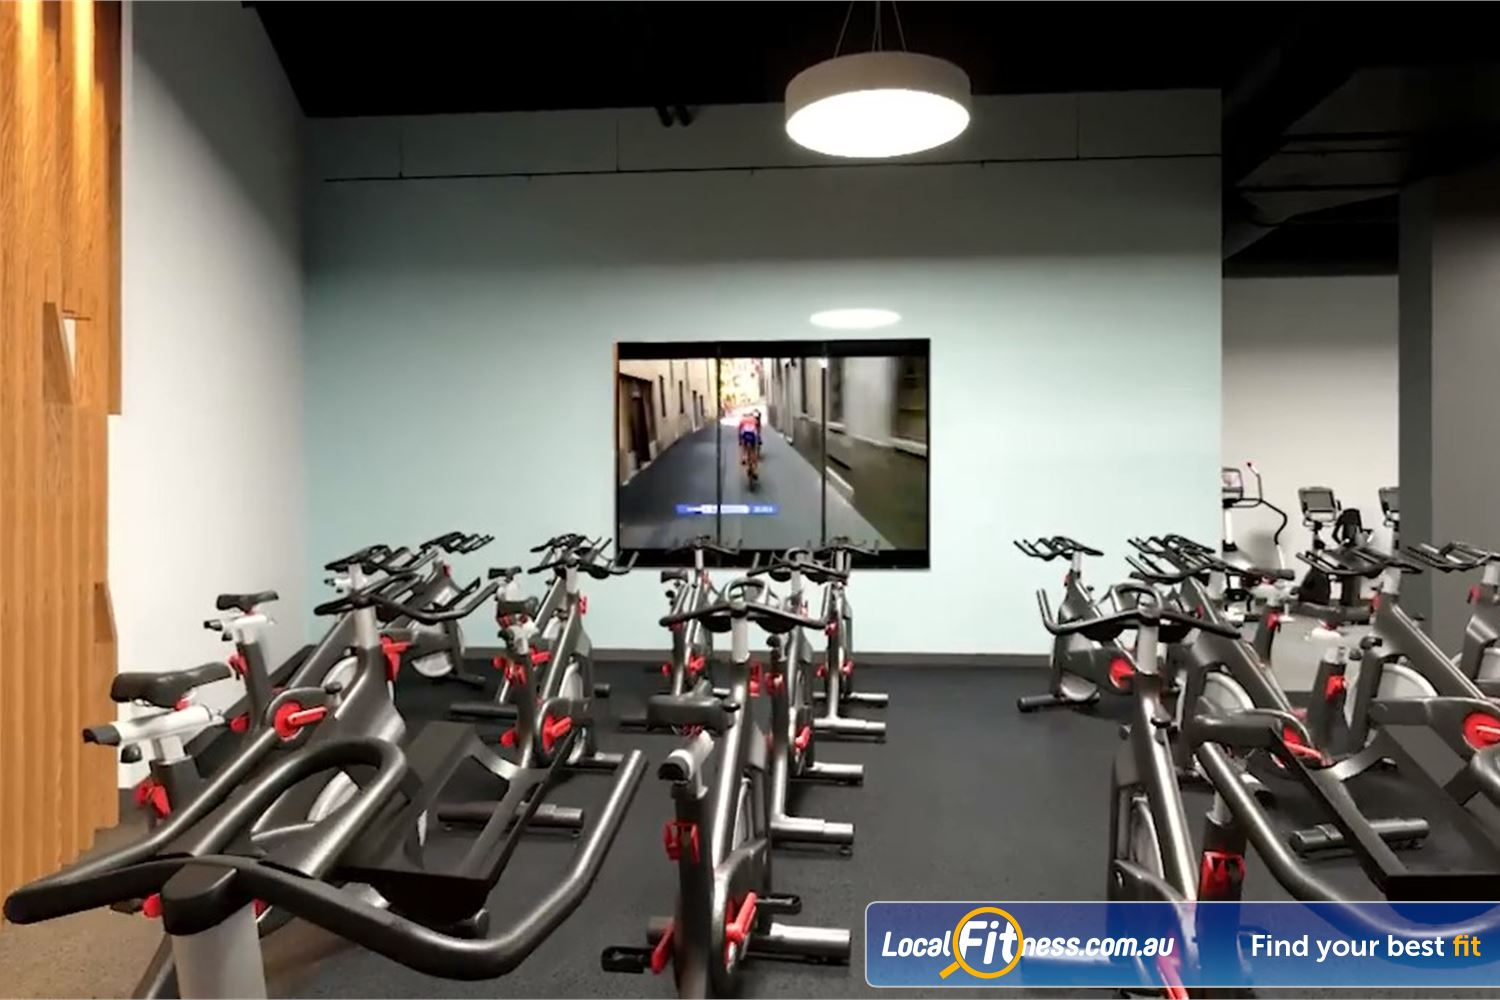 Goodlife Health Clubs Near Ballard Our state of the art Toowoomba spin cycle studio.